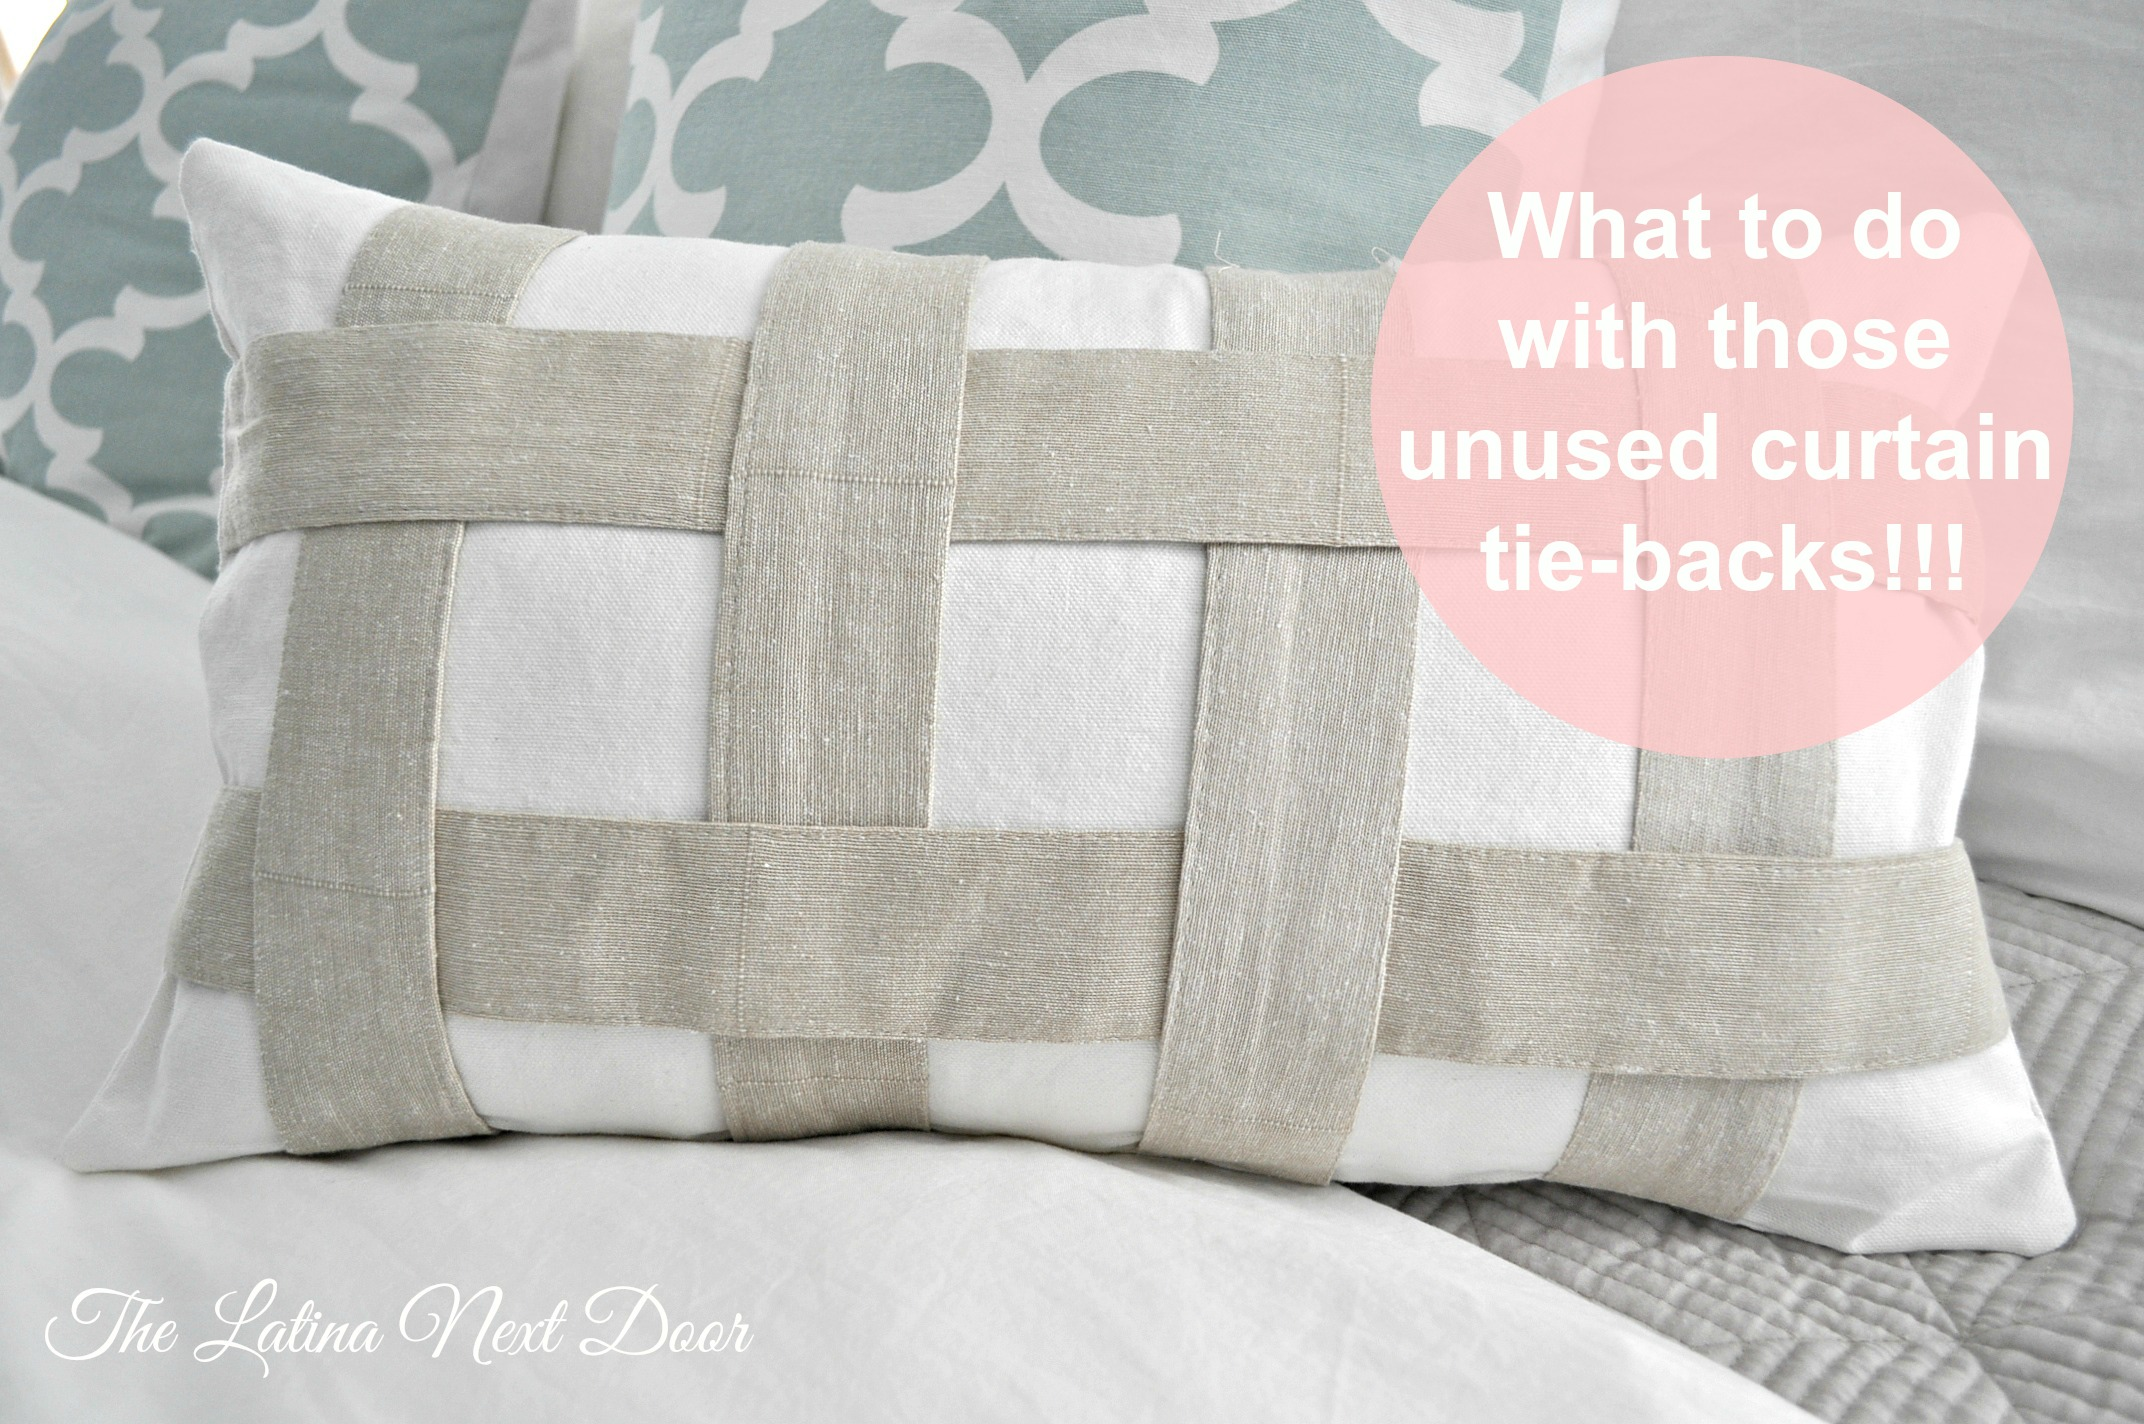 Tie Back Pillow Pin Repurpose those unused curtain tie backs